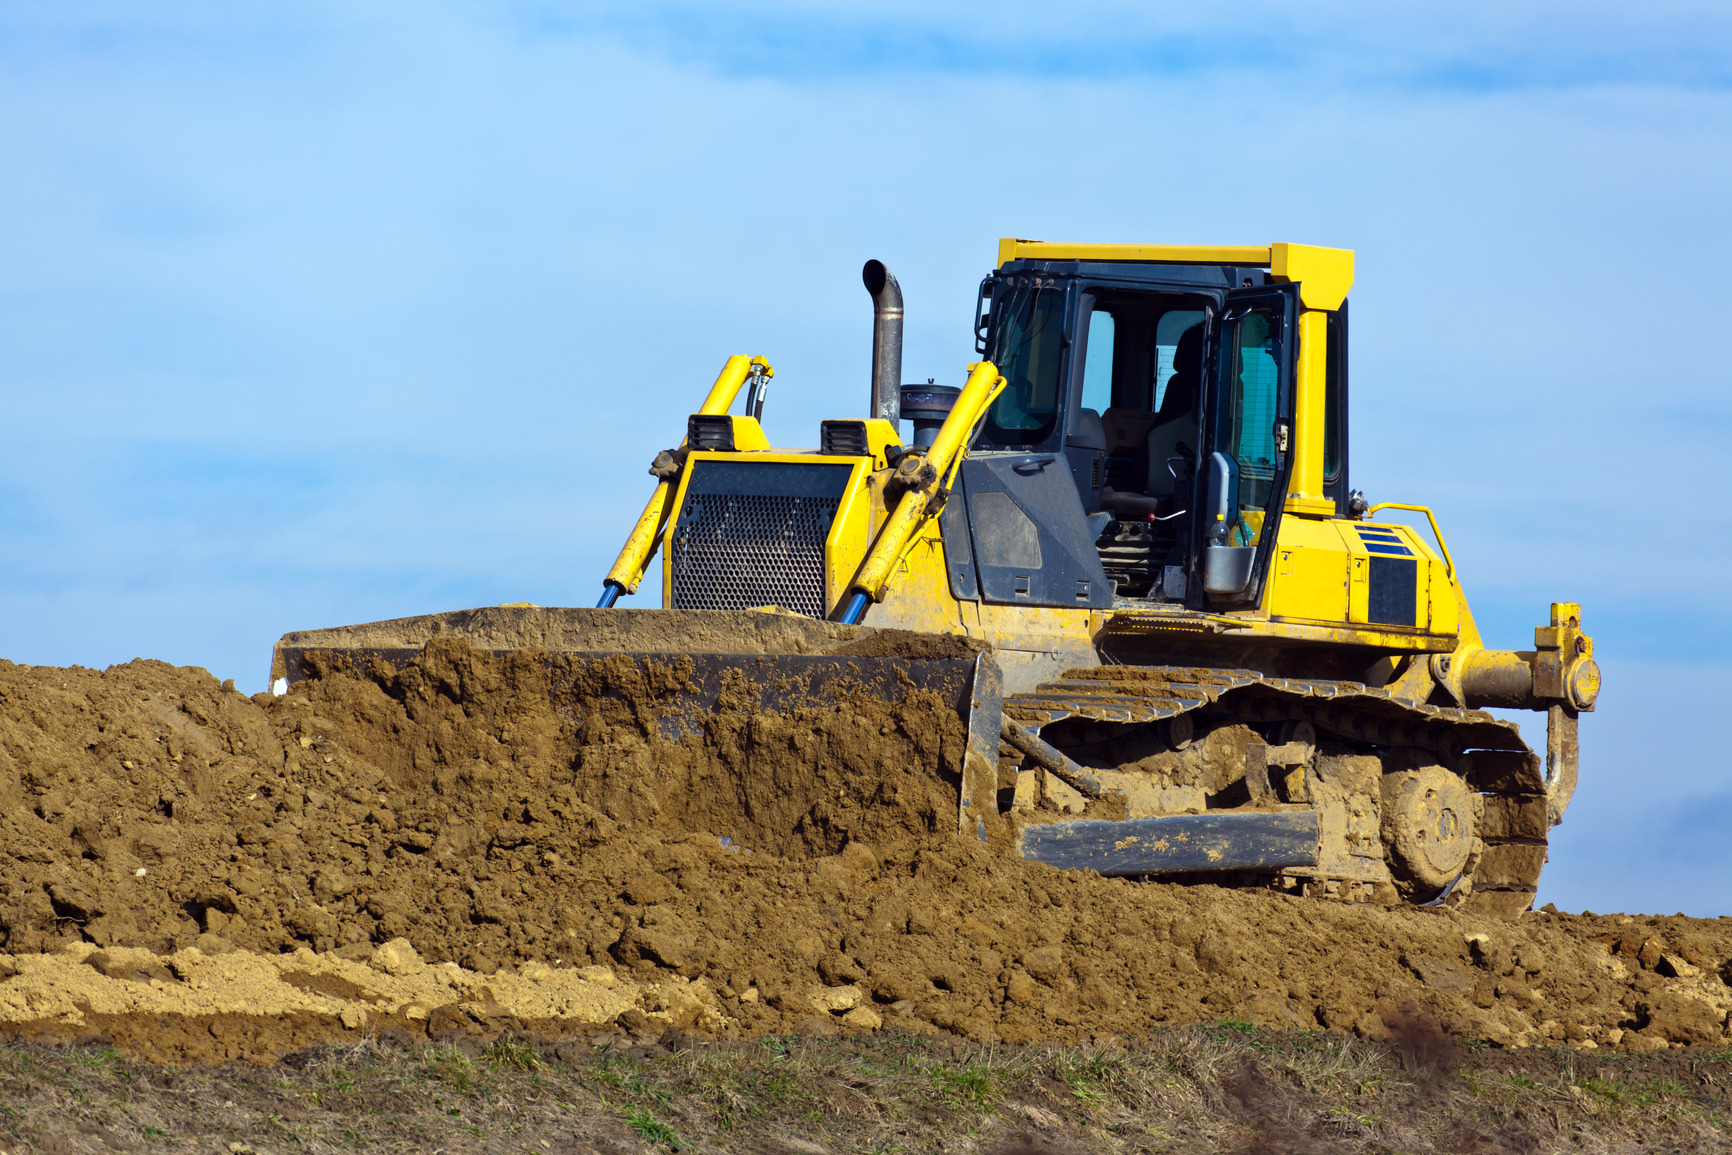 photodune-1835698-excavators-at-work-at-construction-site-m